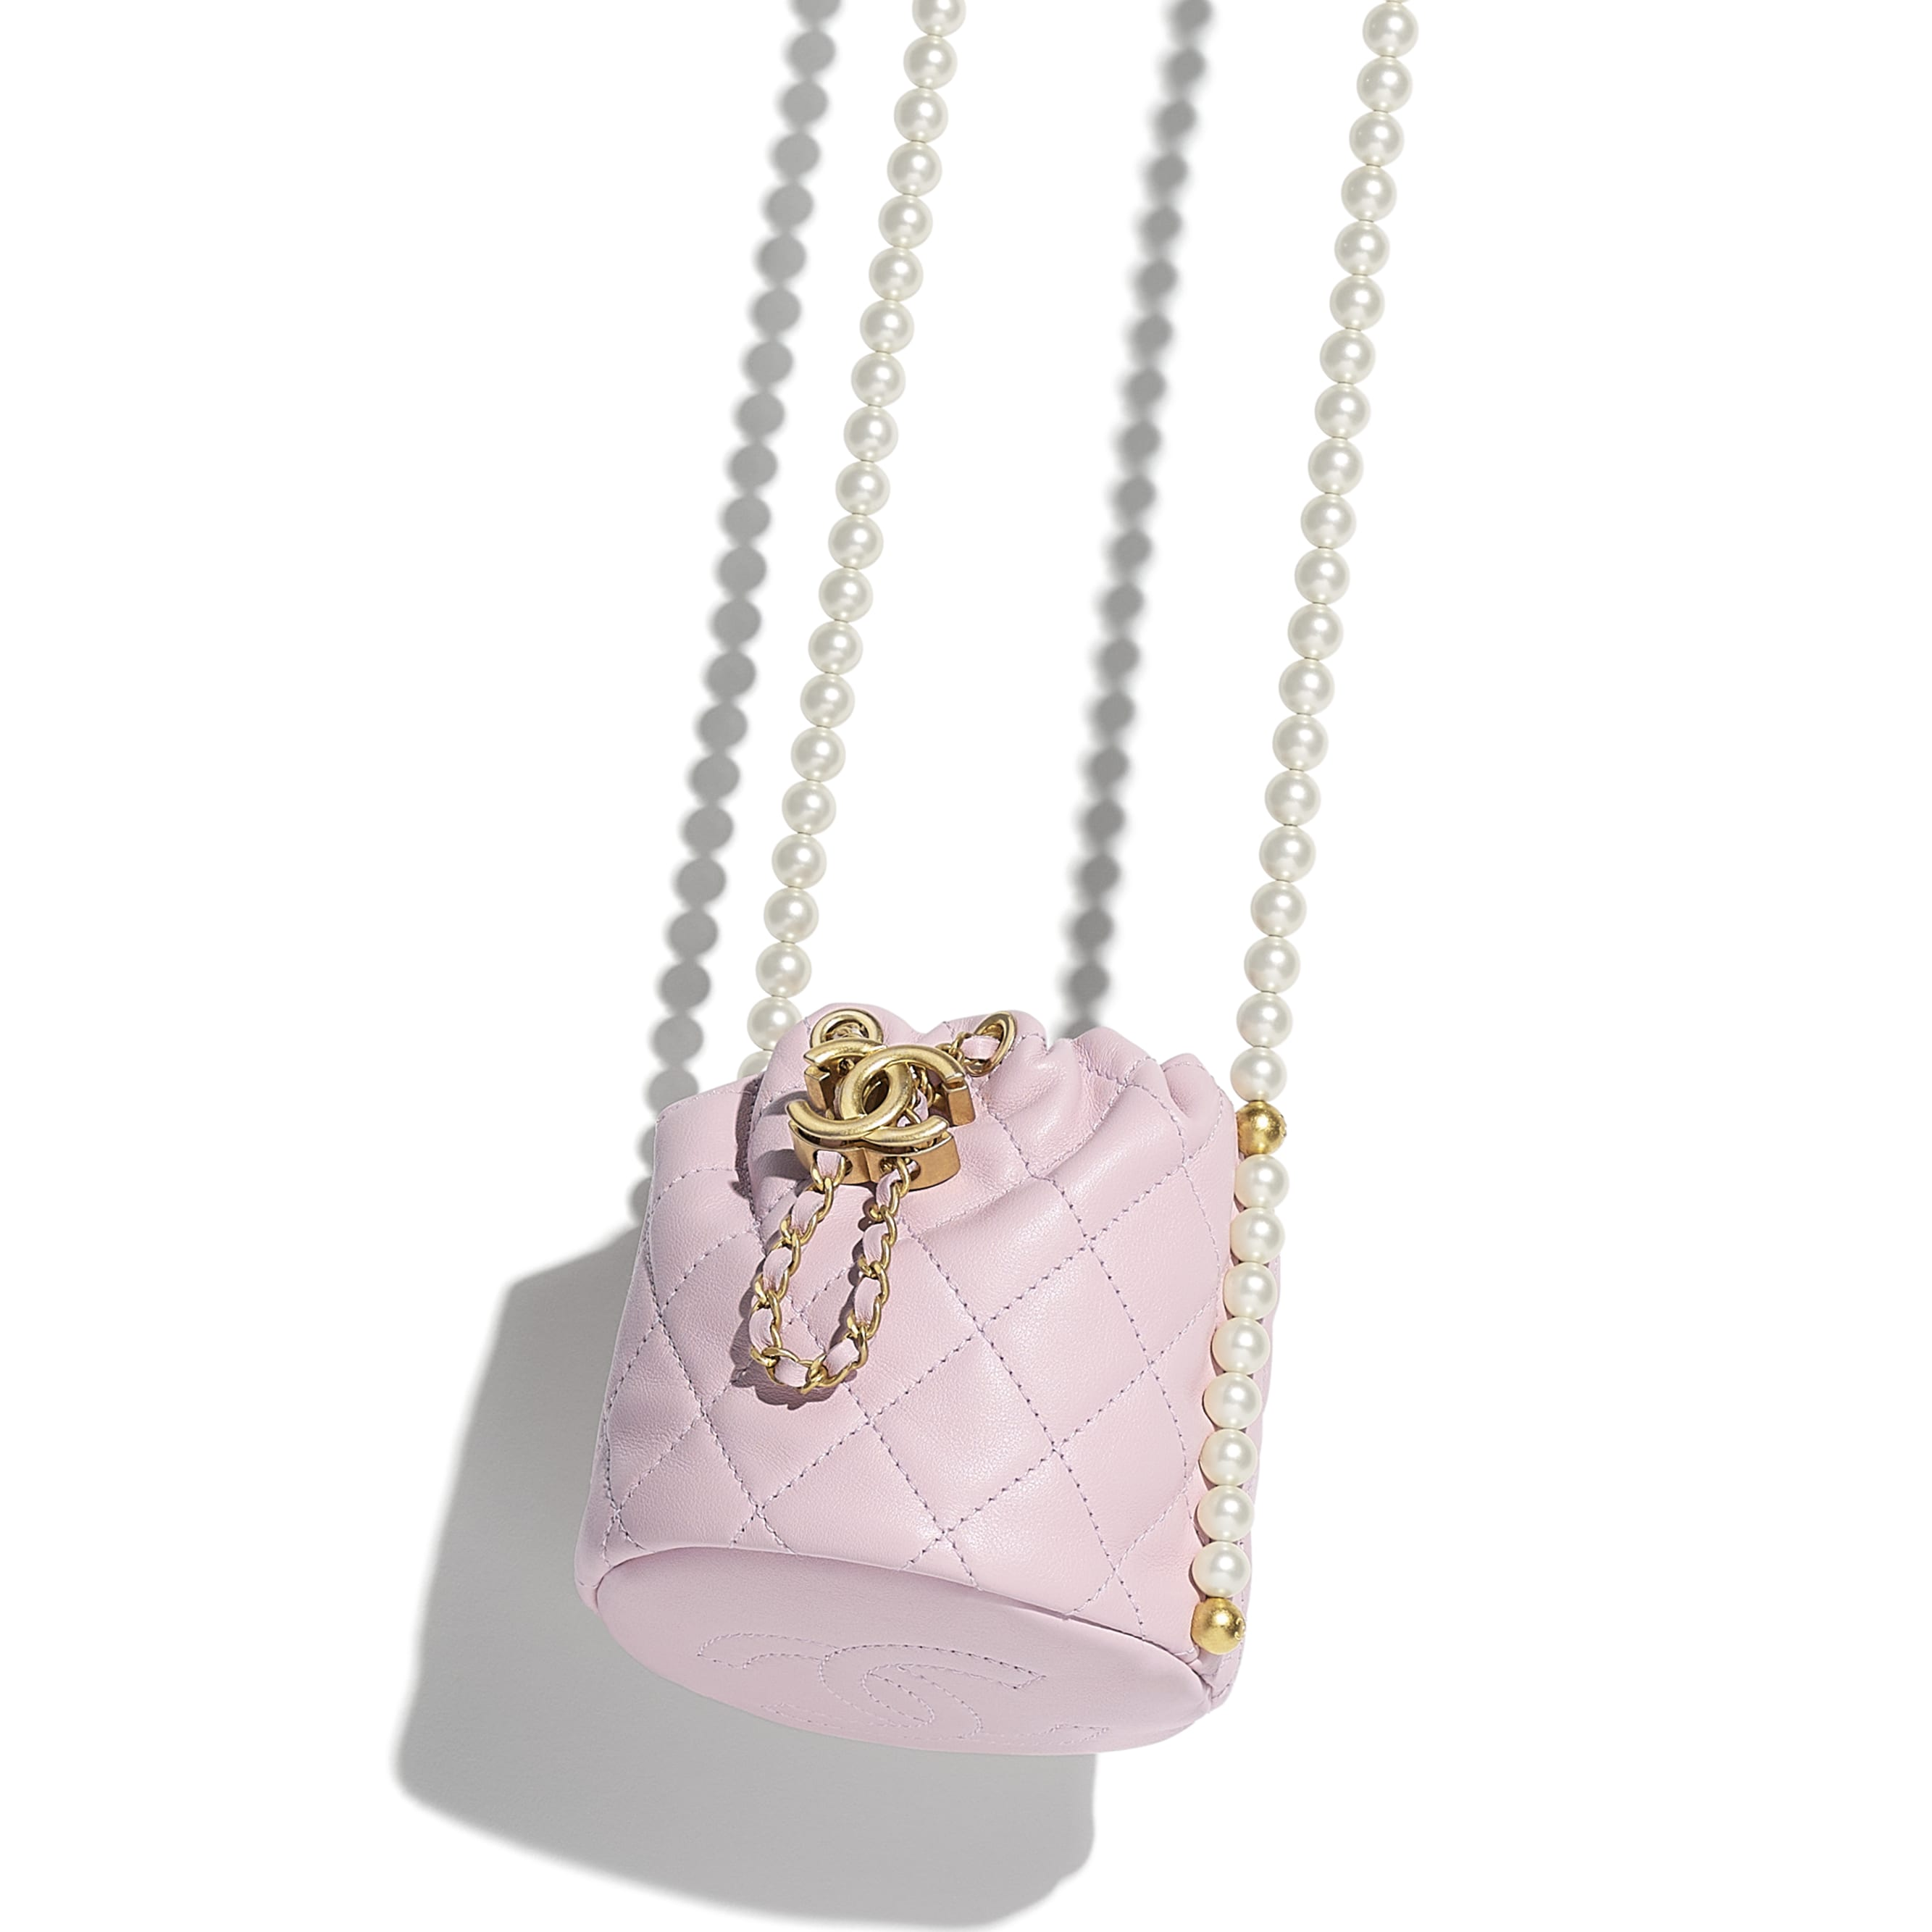 Mini Drawstring Bag - Light Pink - Calfskin, Imitation Pearls & Gold-Tone Metal - CHANEL - Extra view - see standard sized version